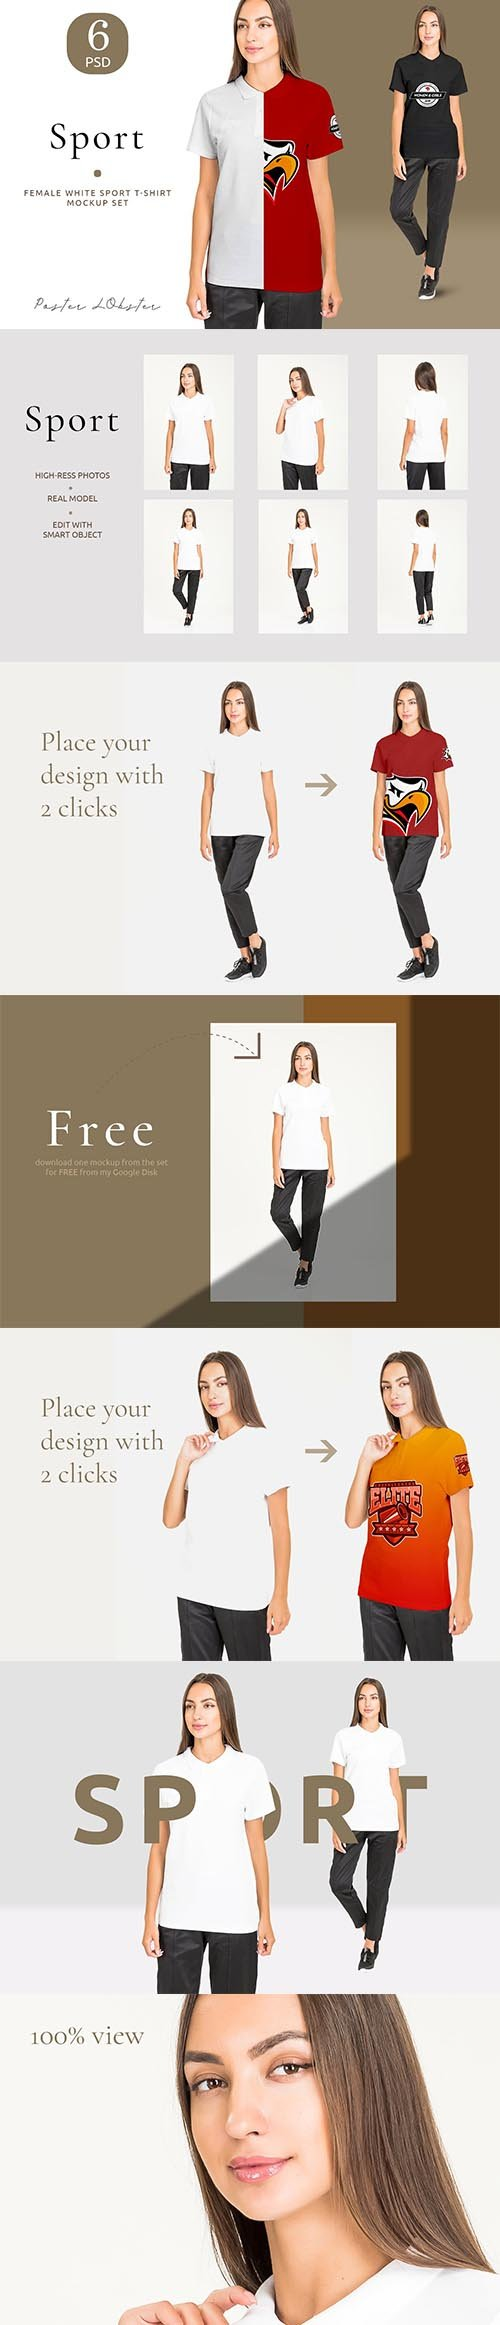 CreativeMarket - Women sport t-shirt mockup set 4158156